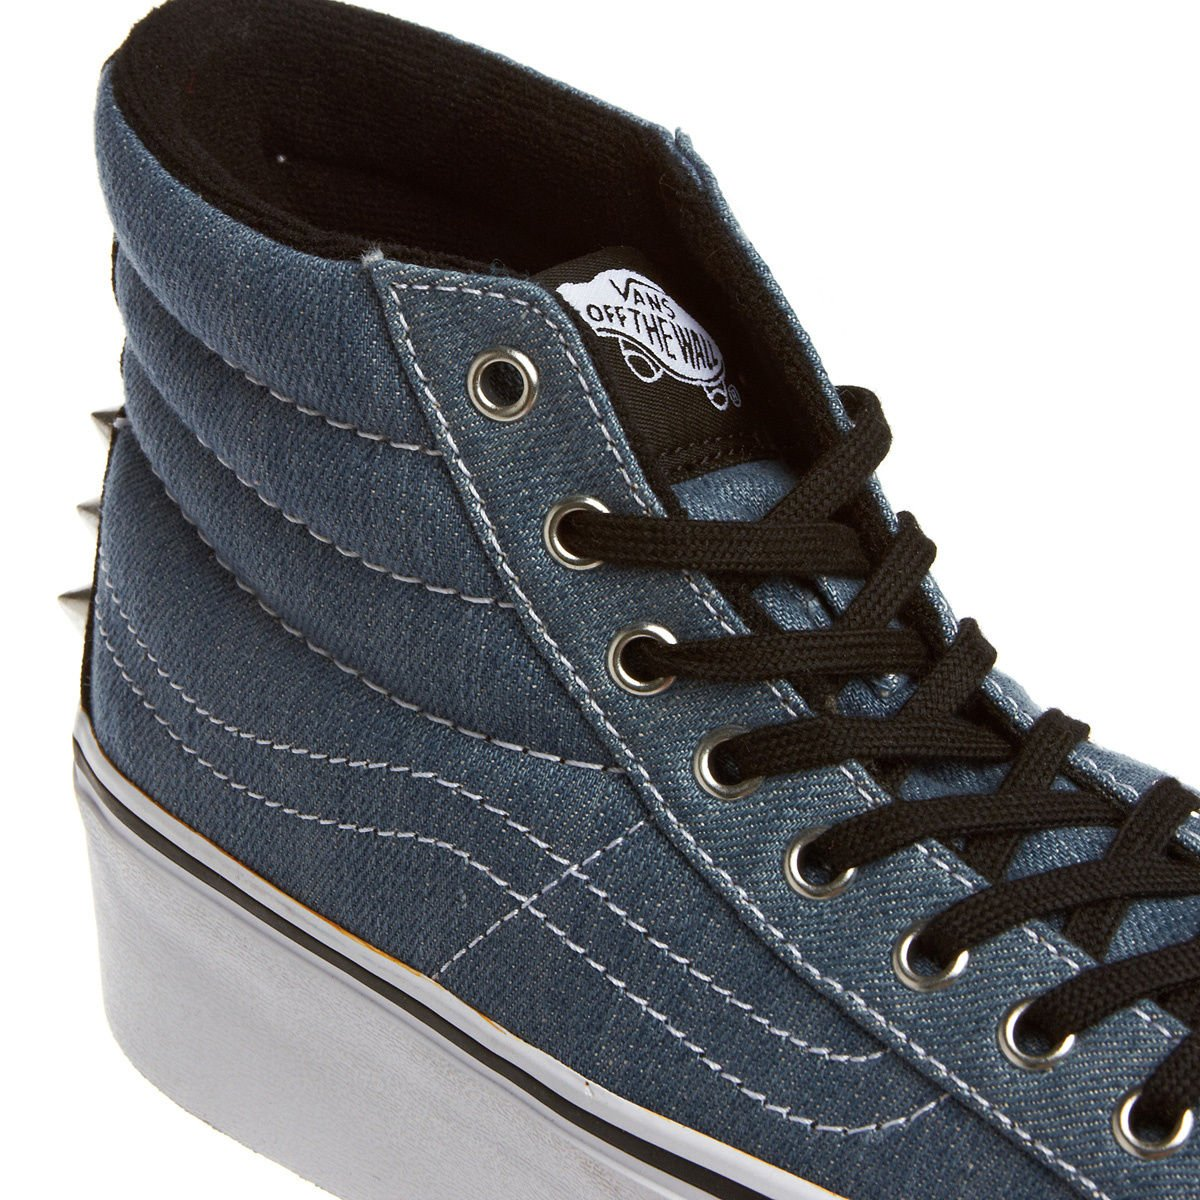 3f6ccb9eef9d Vans Women s VRRF8SK Sk8-Hi Platform Blue Size  9  Amazon.co.uk  Shoes    Bags